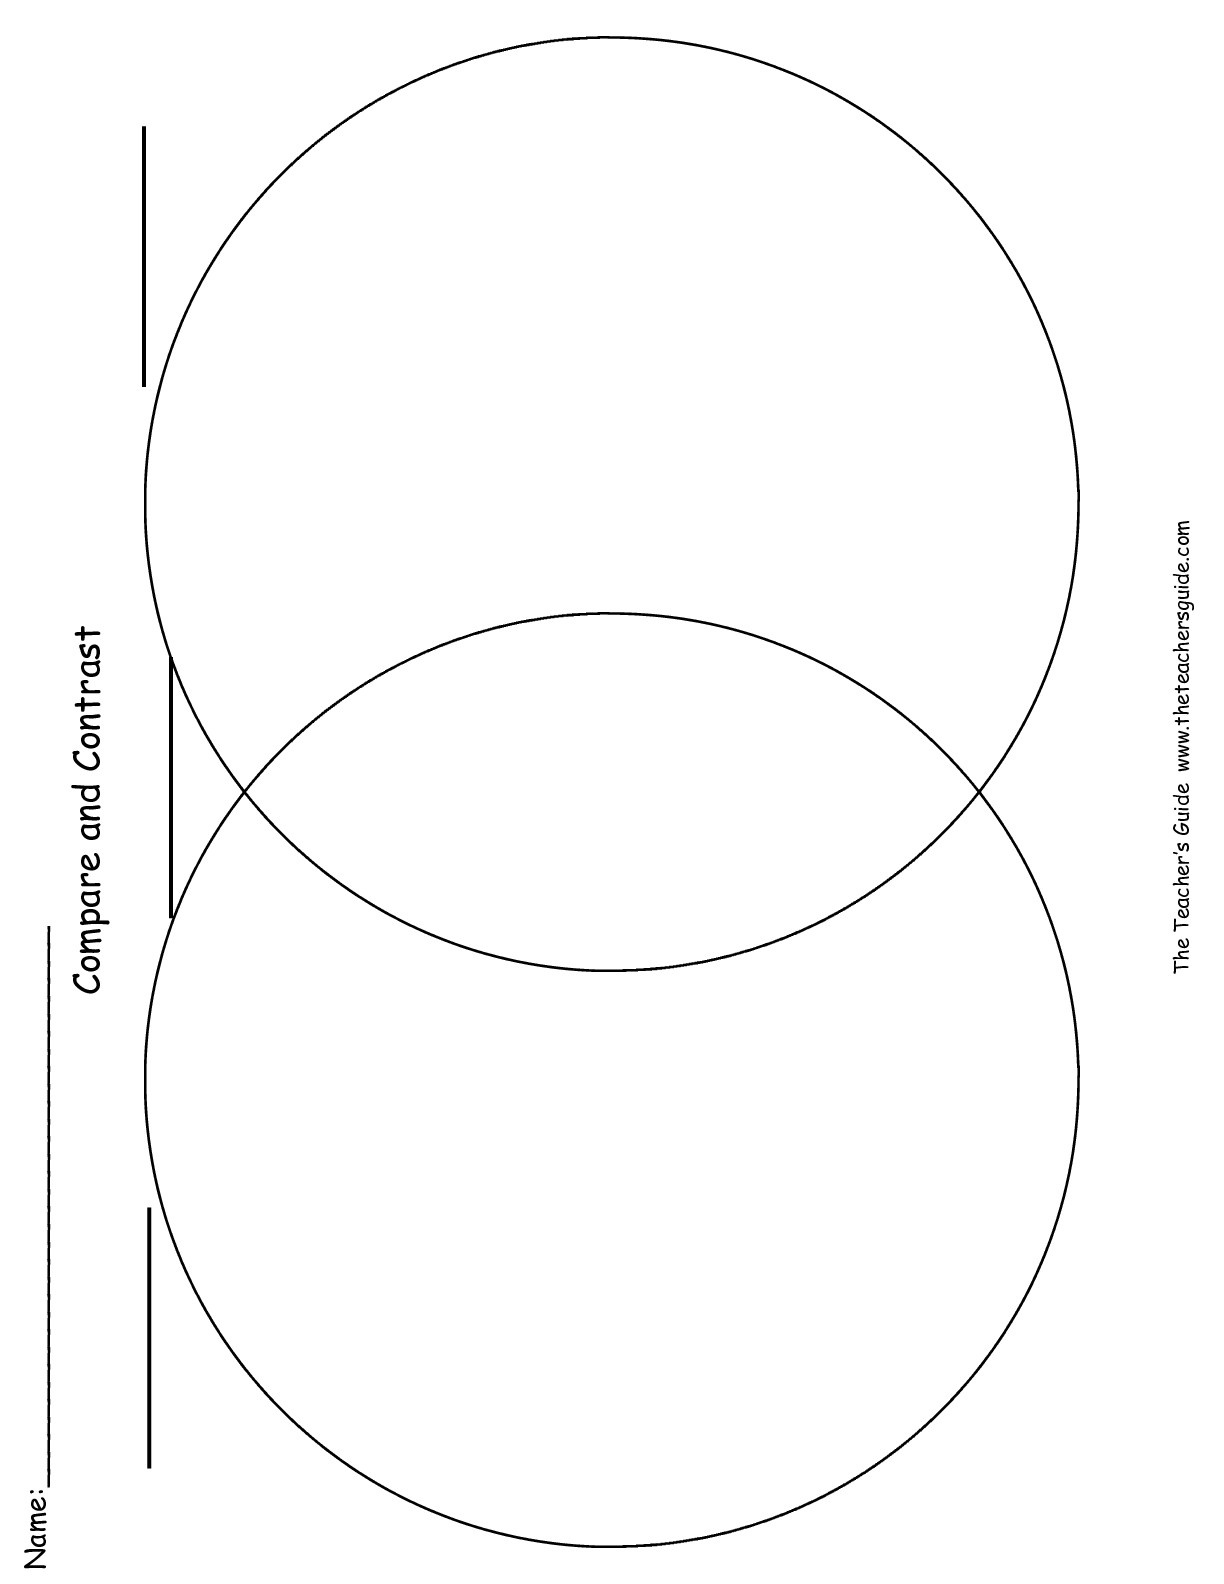 Writing Graphic Organizer Worksheets From The Teacher's Guide - Free Printable Compare And Contrast Graphic Organizer